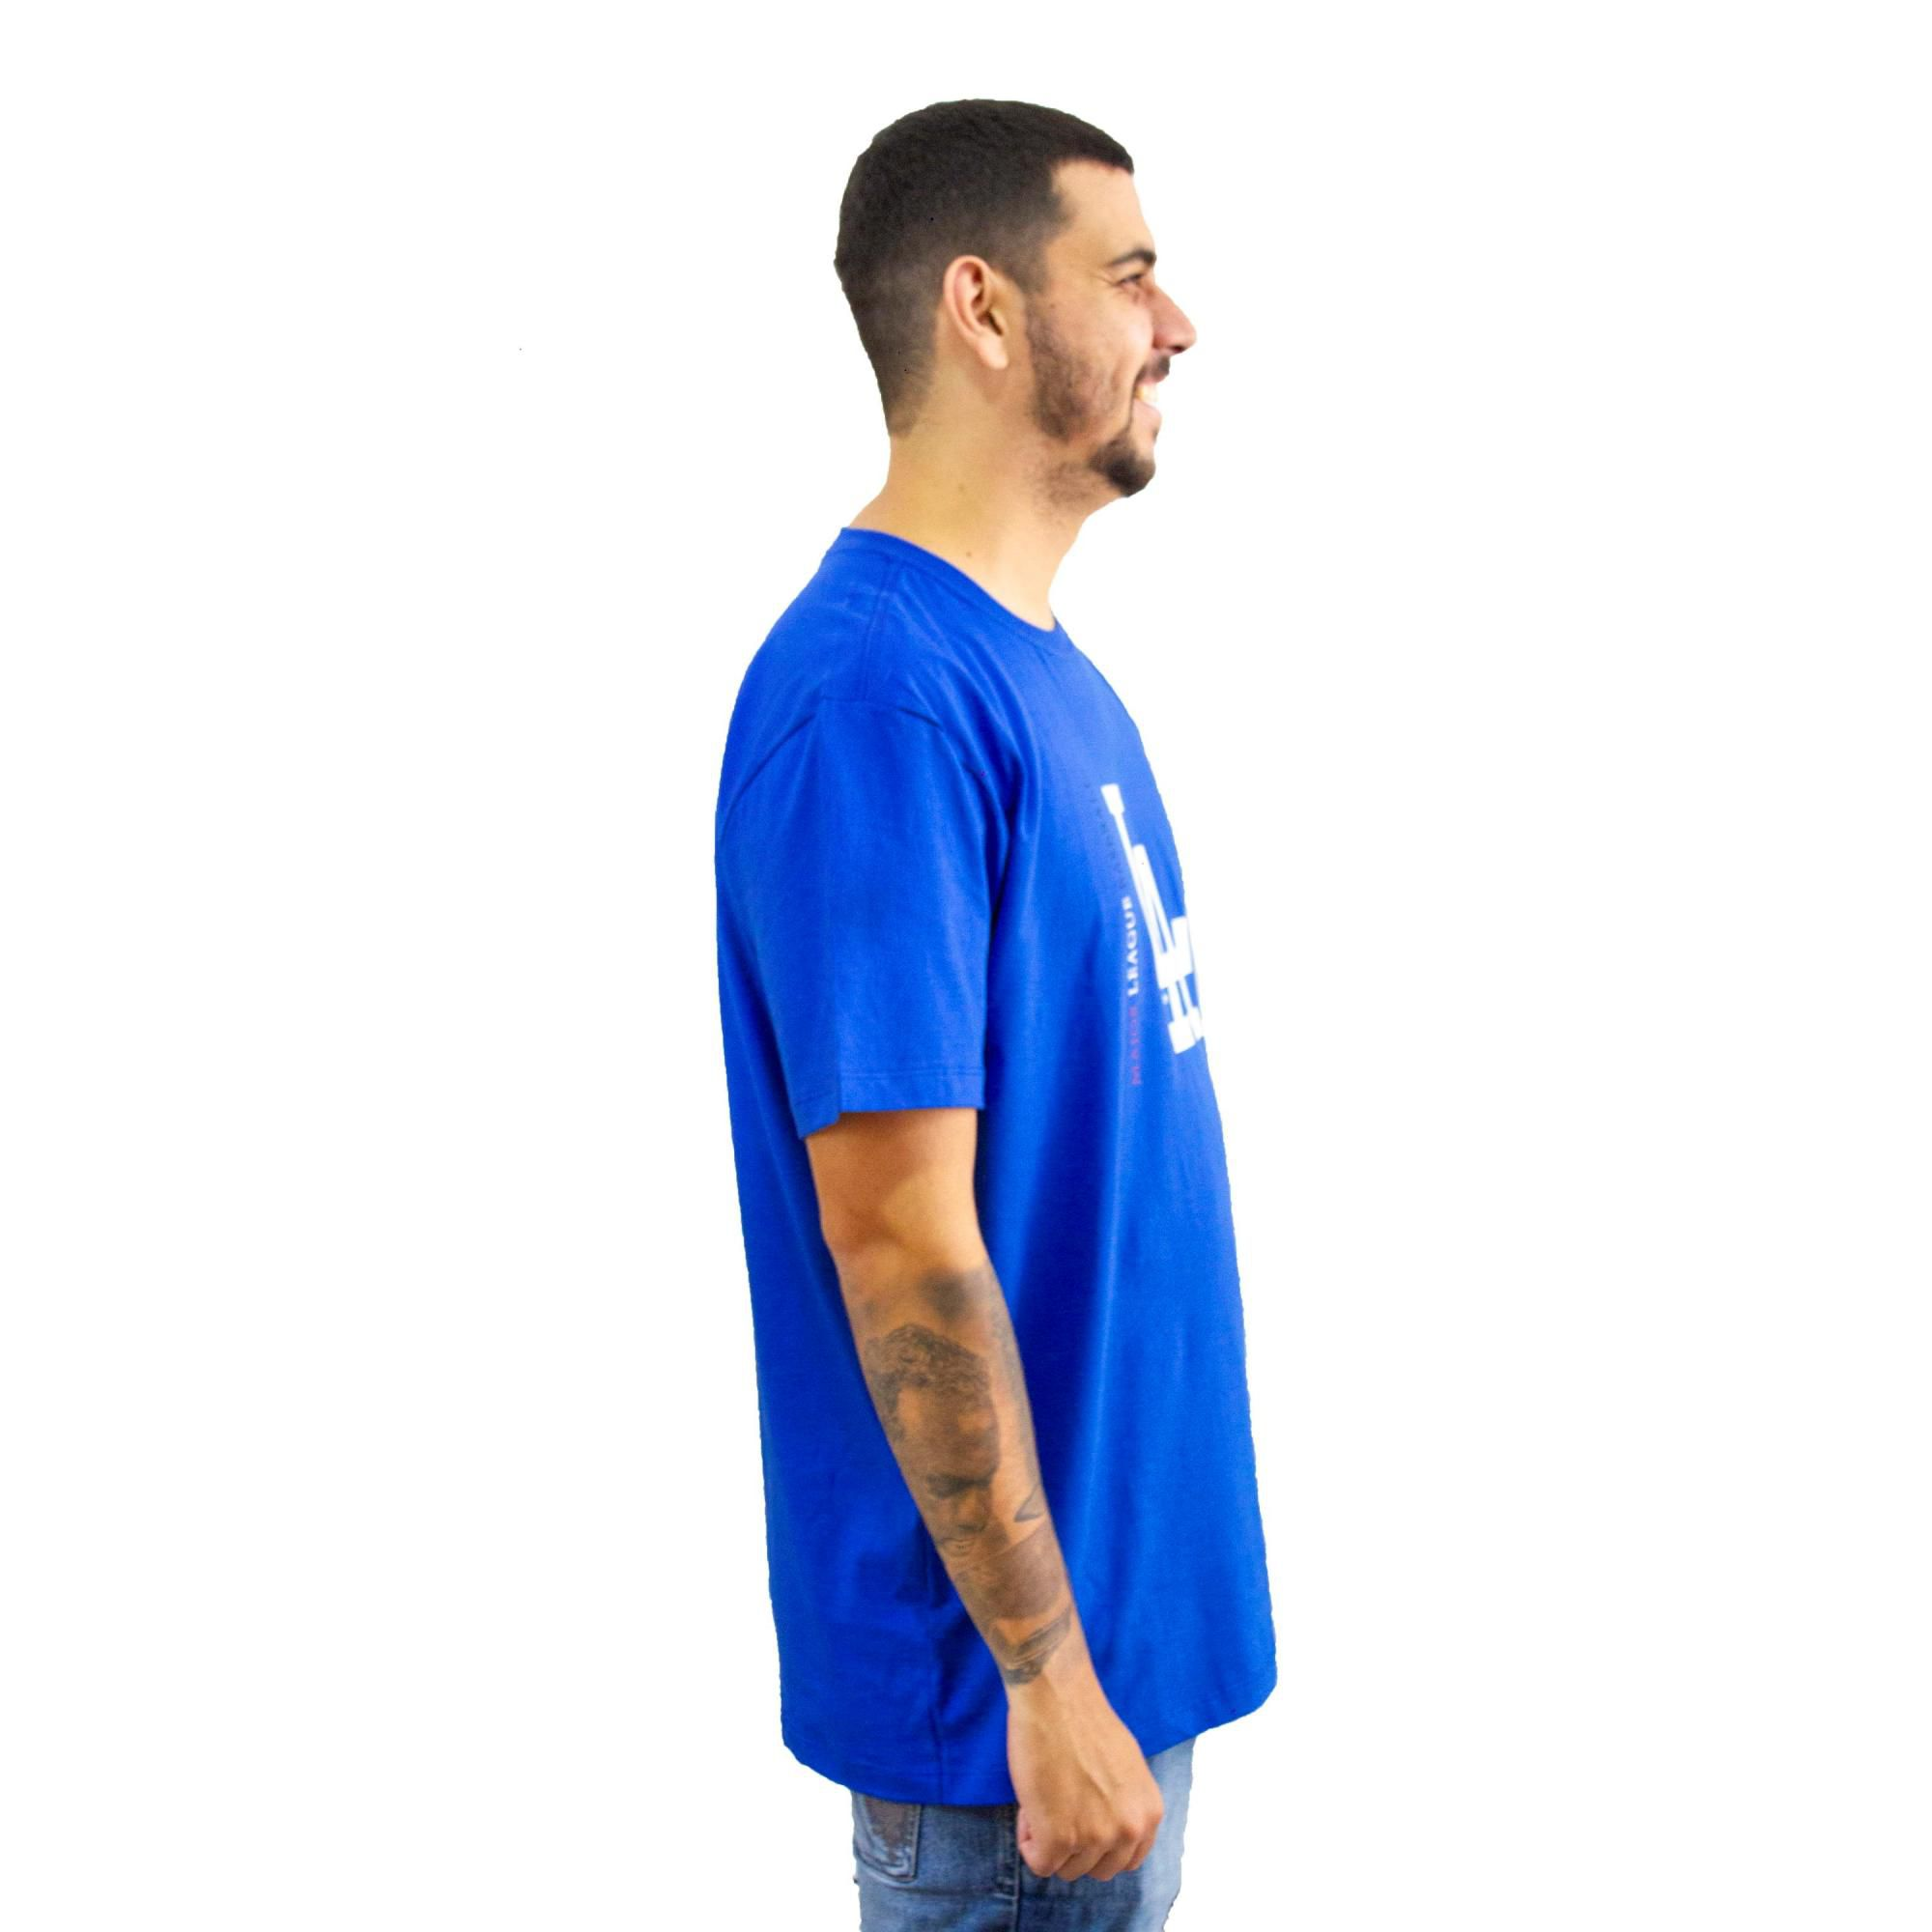 Camiseta New Era L A Azul Royal